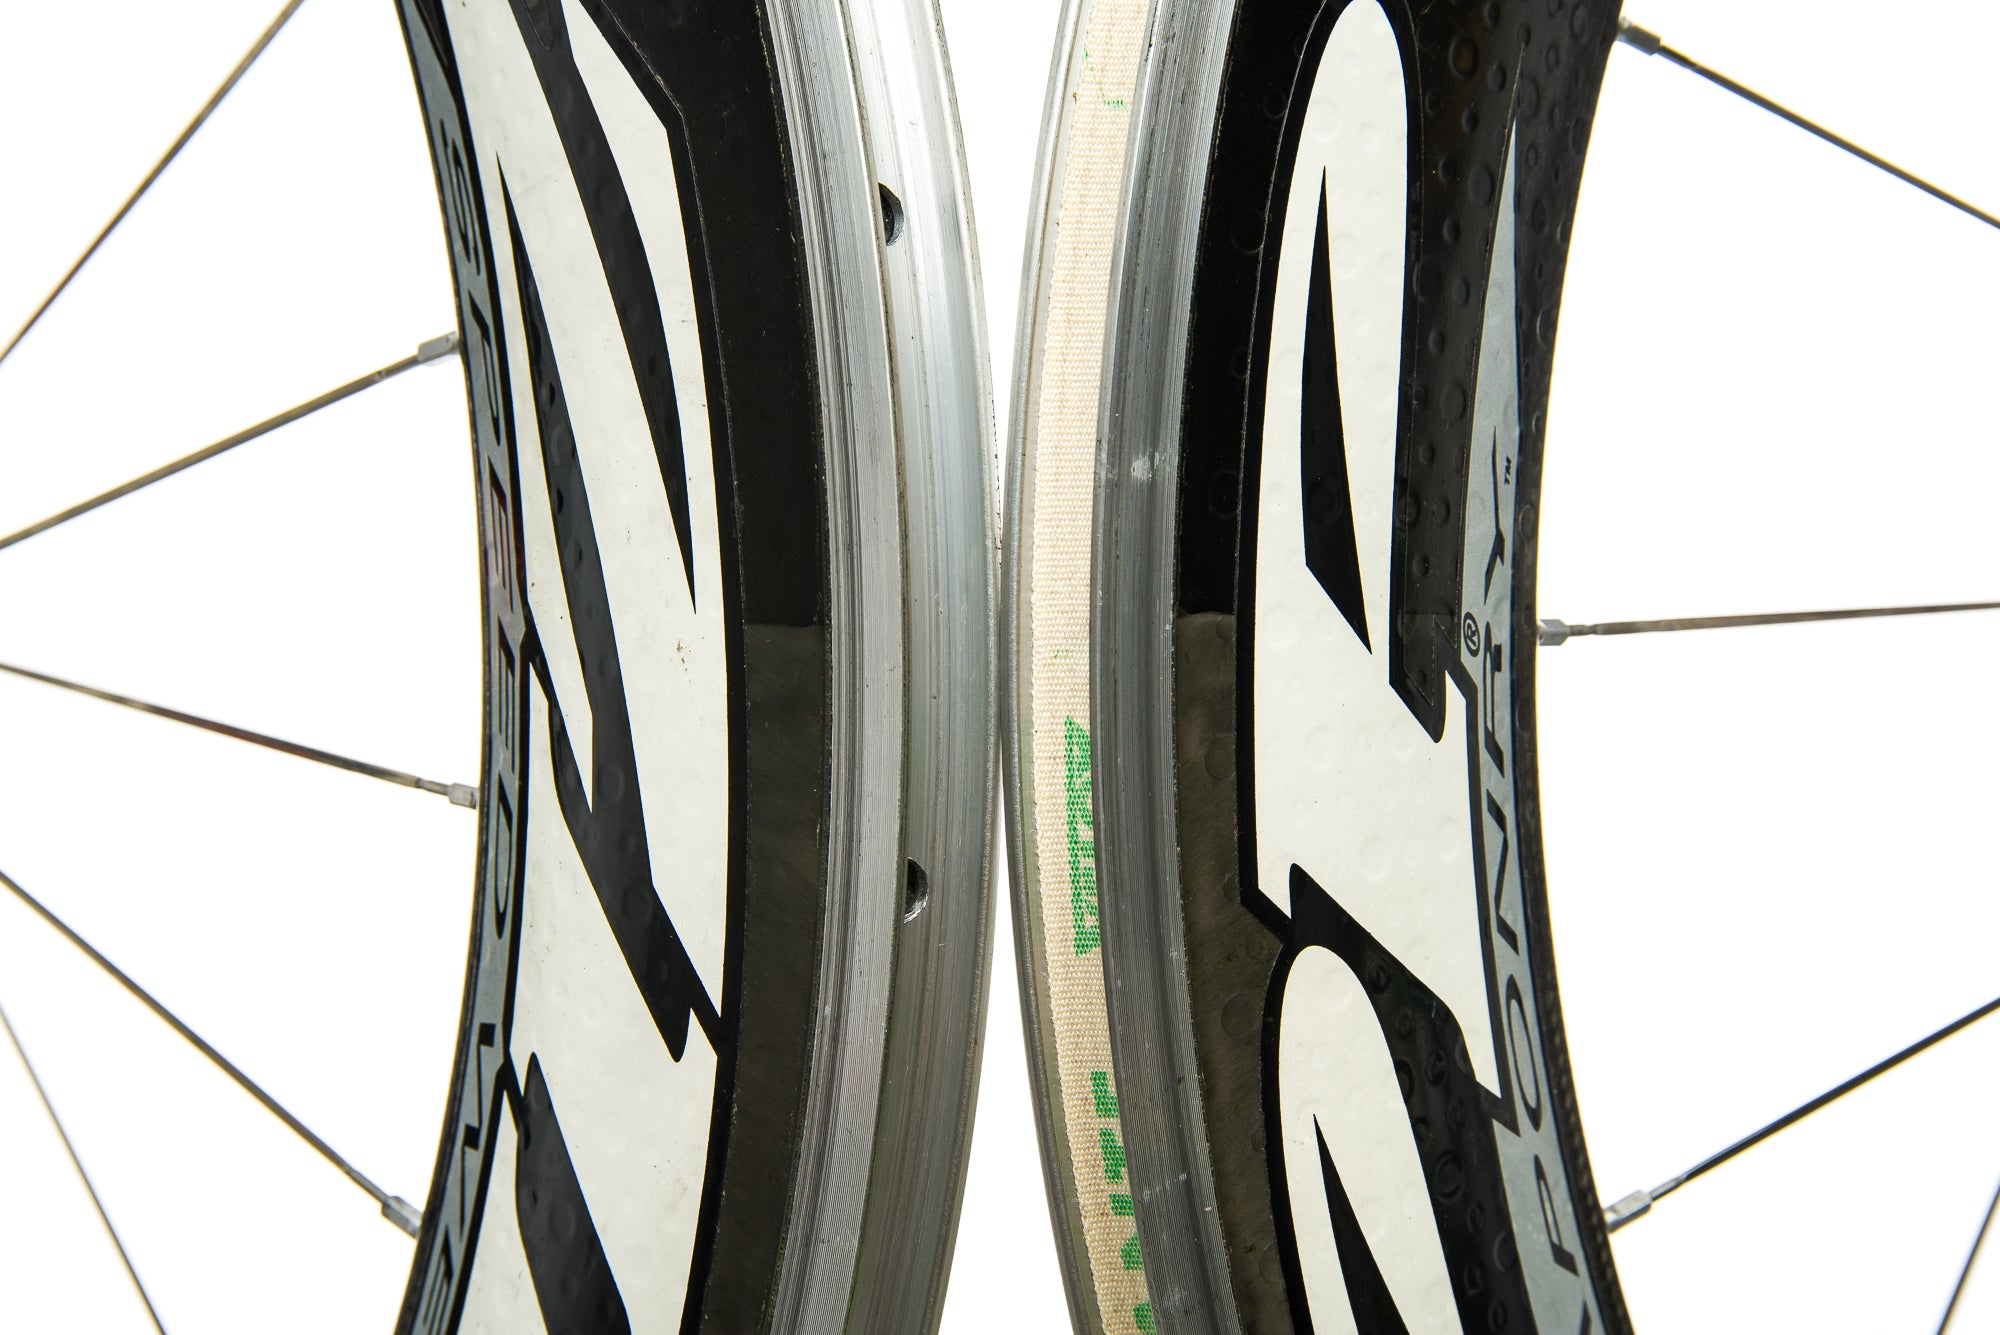 Zipp 808 Carbon Clincher 700c Wheelset